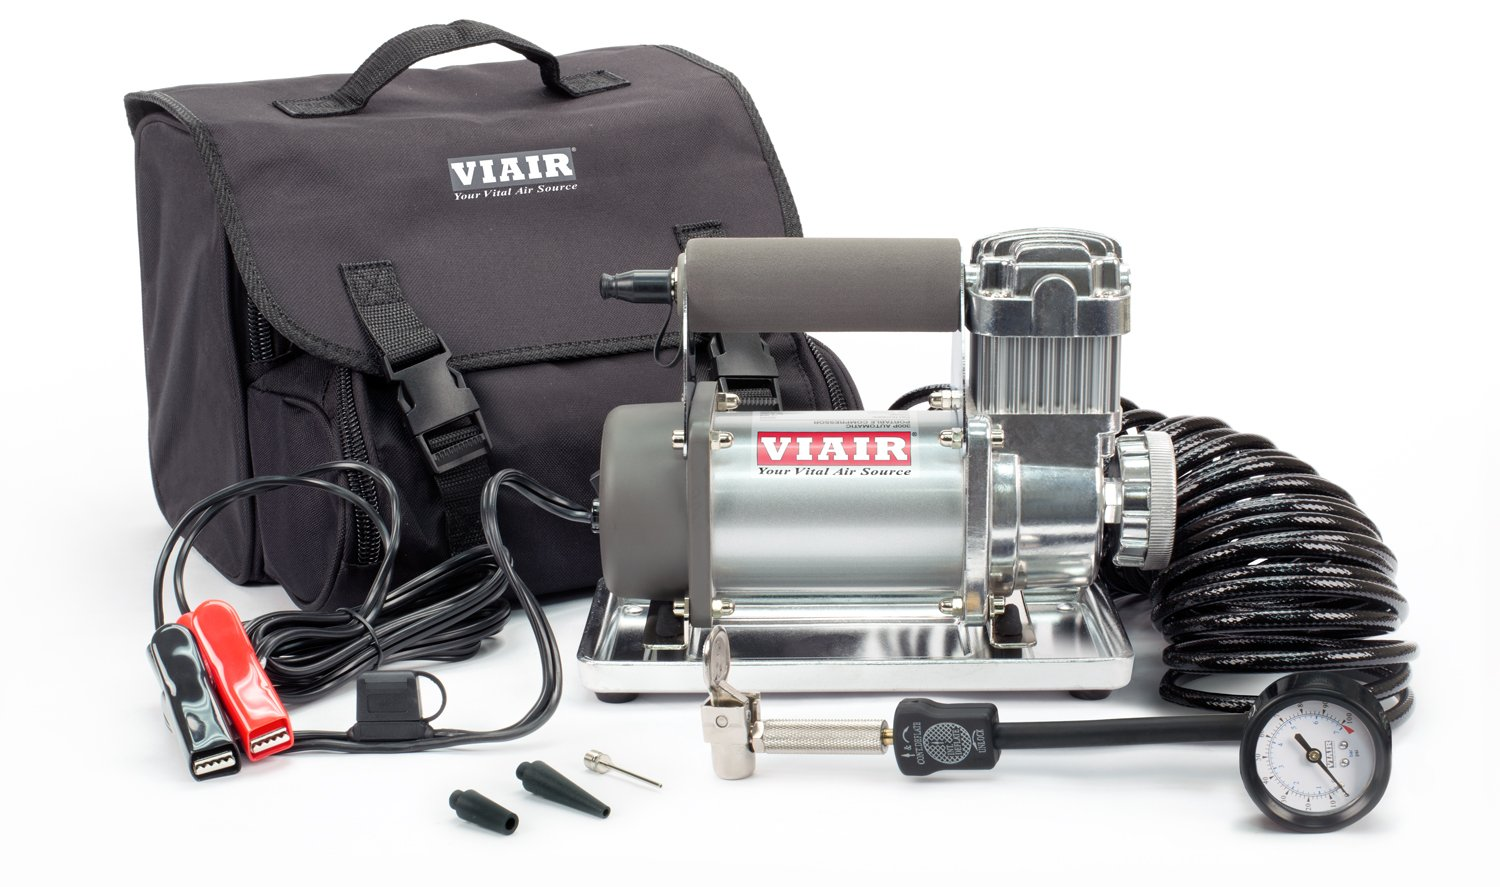 VIAIR 300P Portable Compressor product image